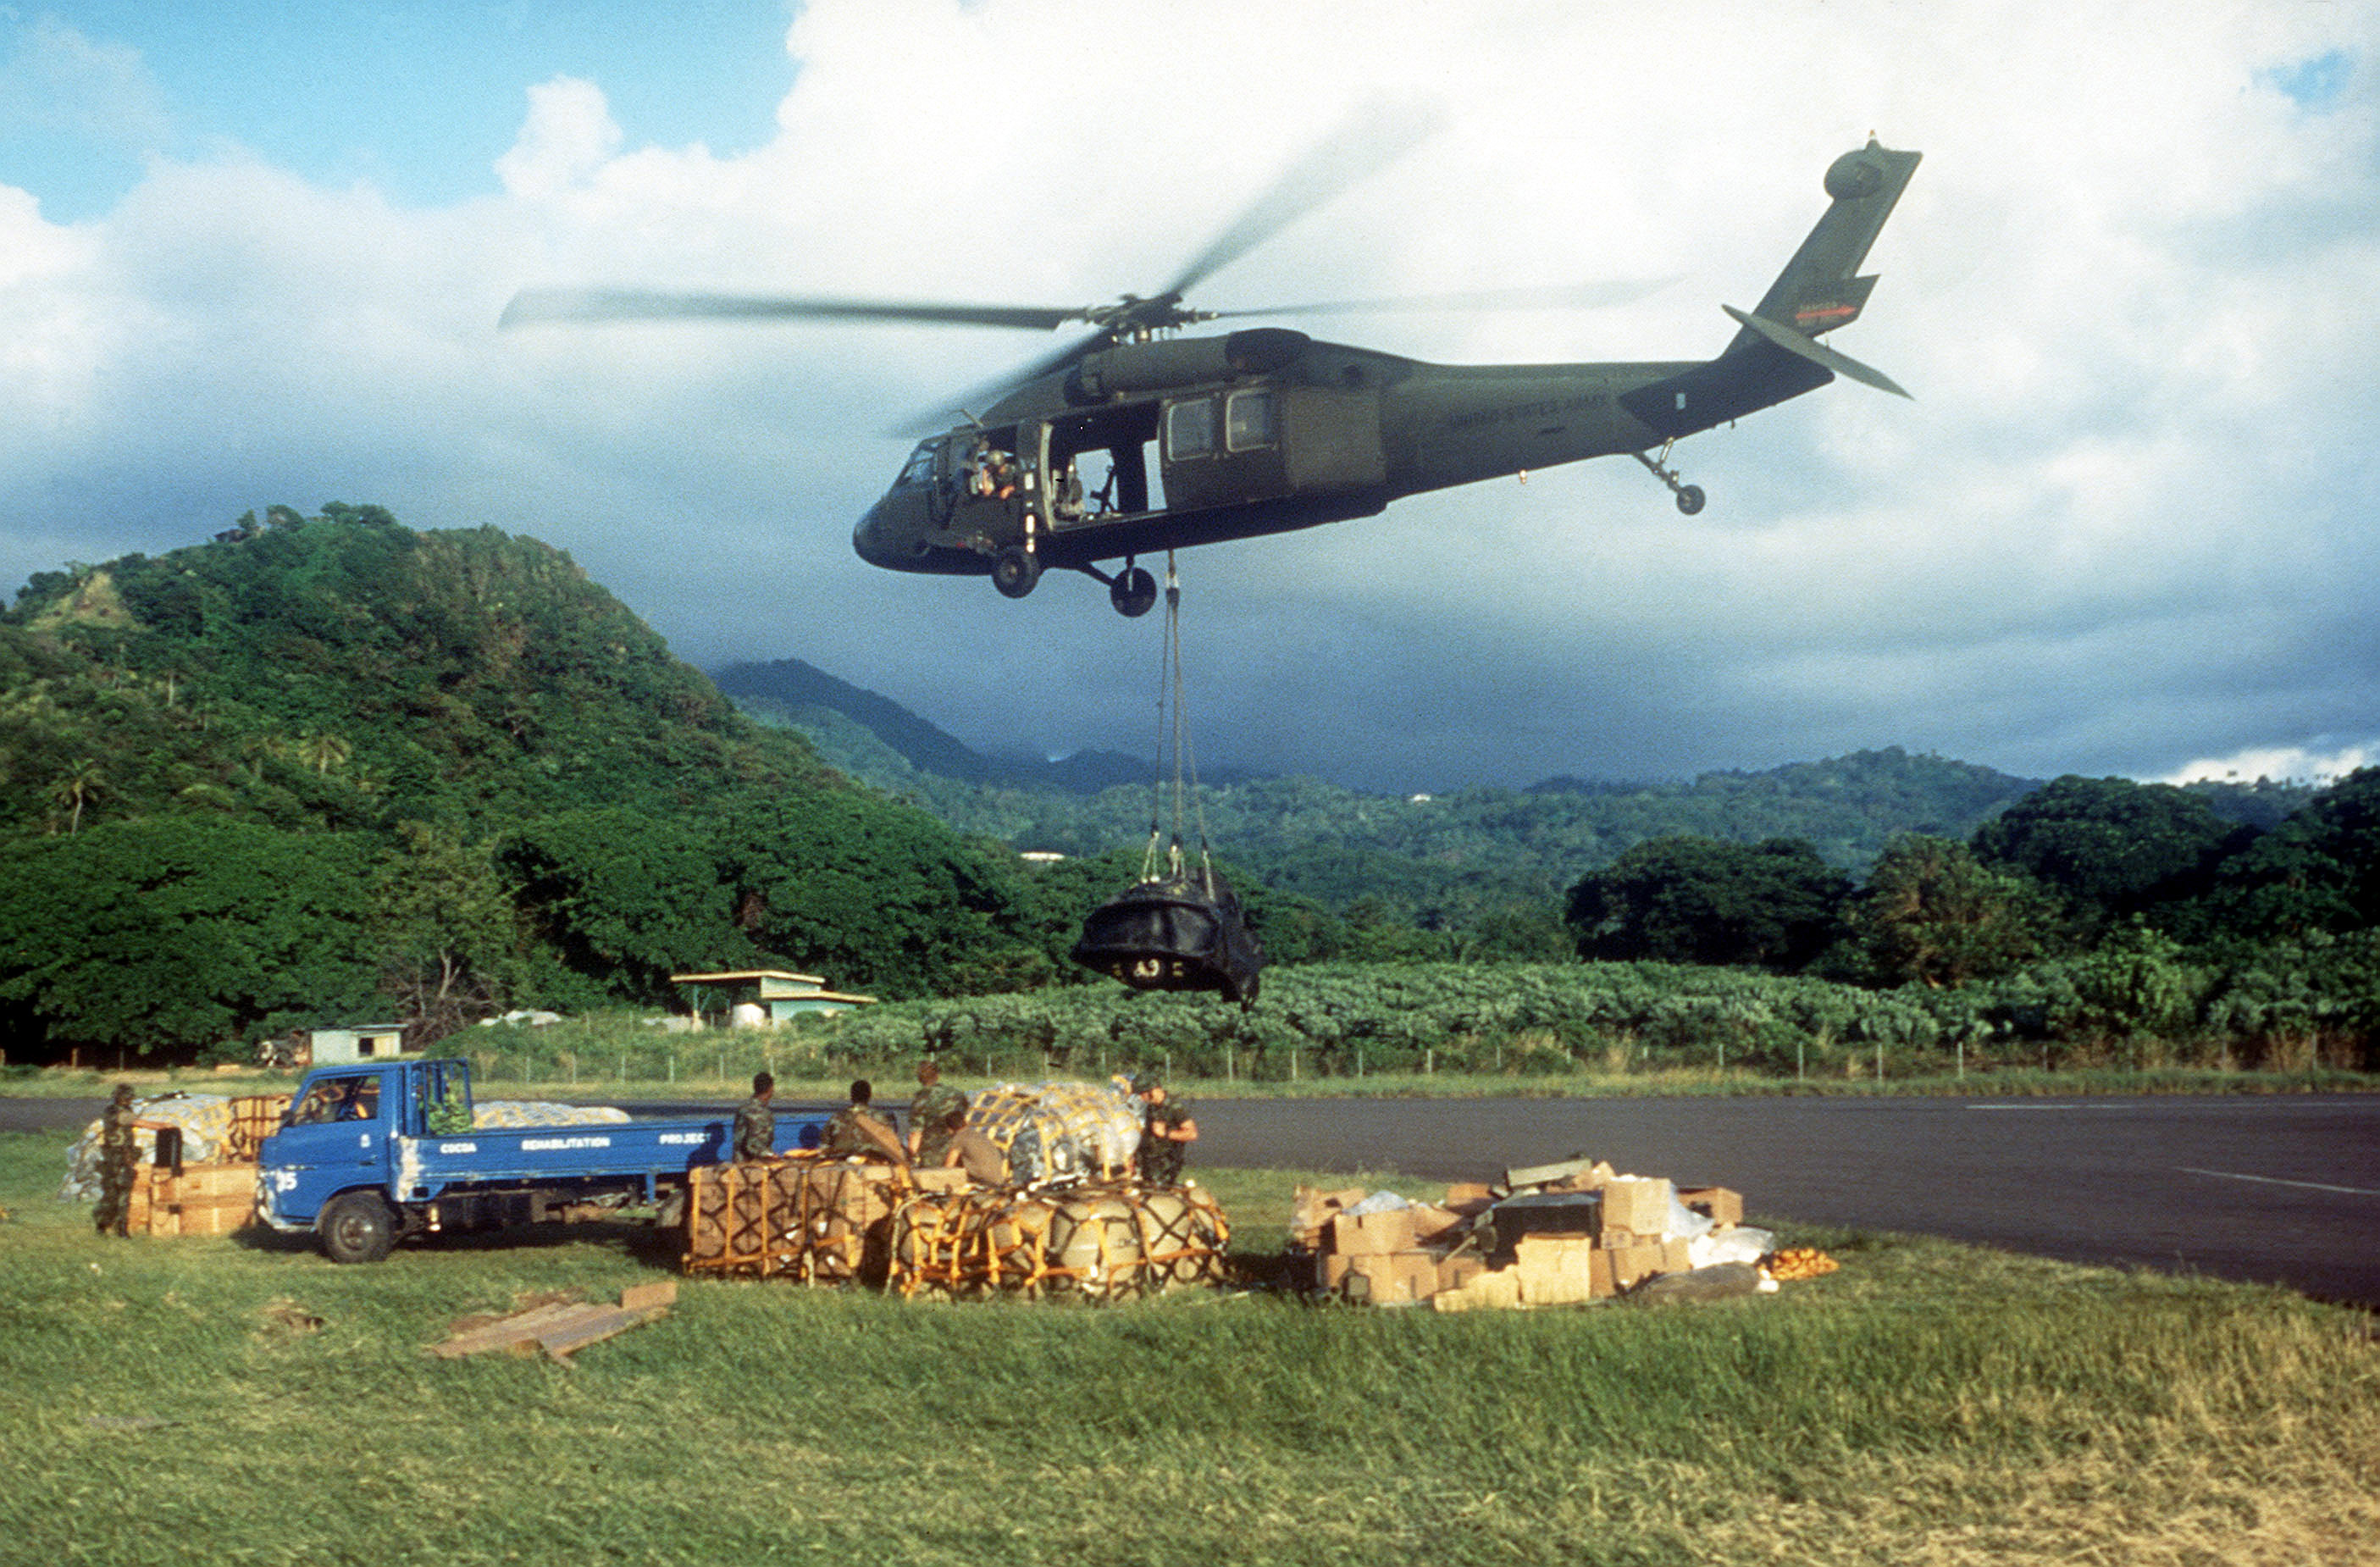 A UH-60 Black Hawk (Blackhawk) helicopters lowers a pallet of supplies at Point Salines Airport during Operation URGENT FURY